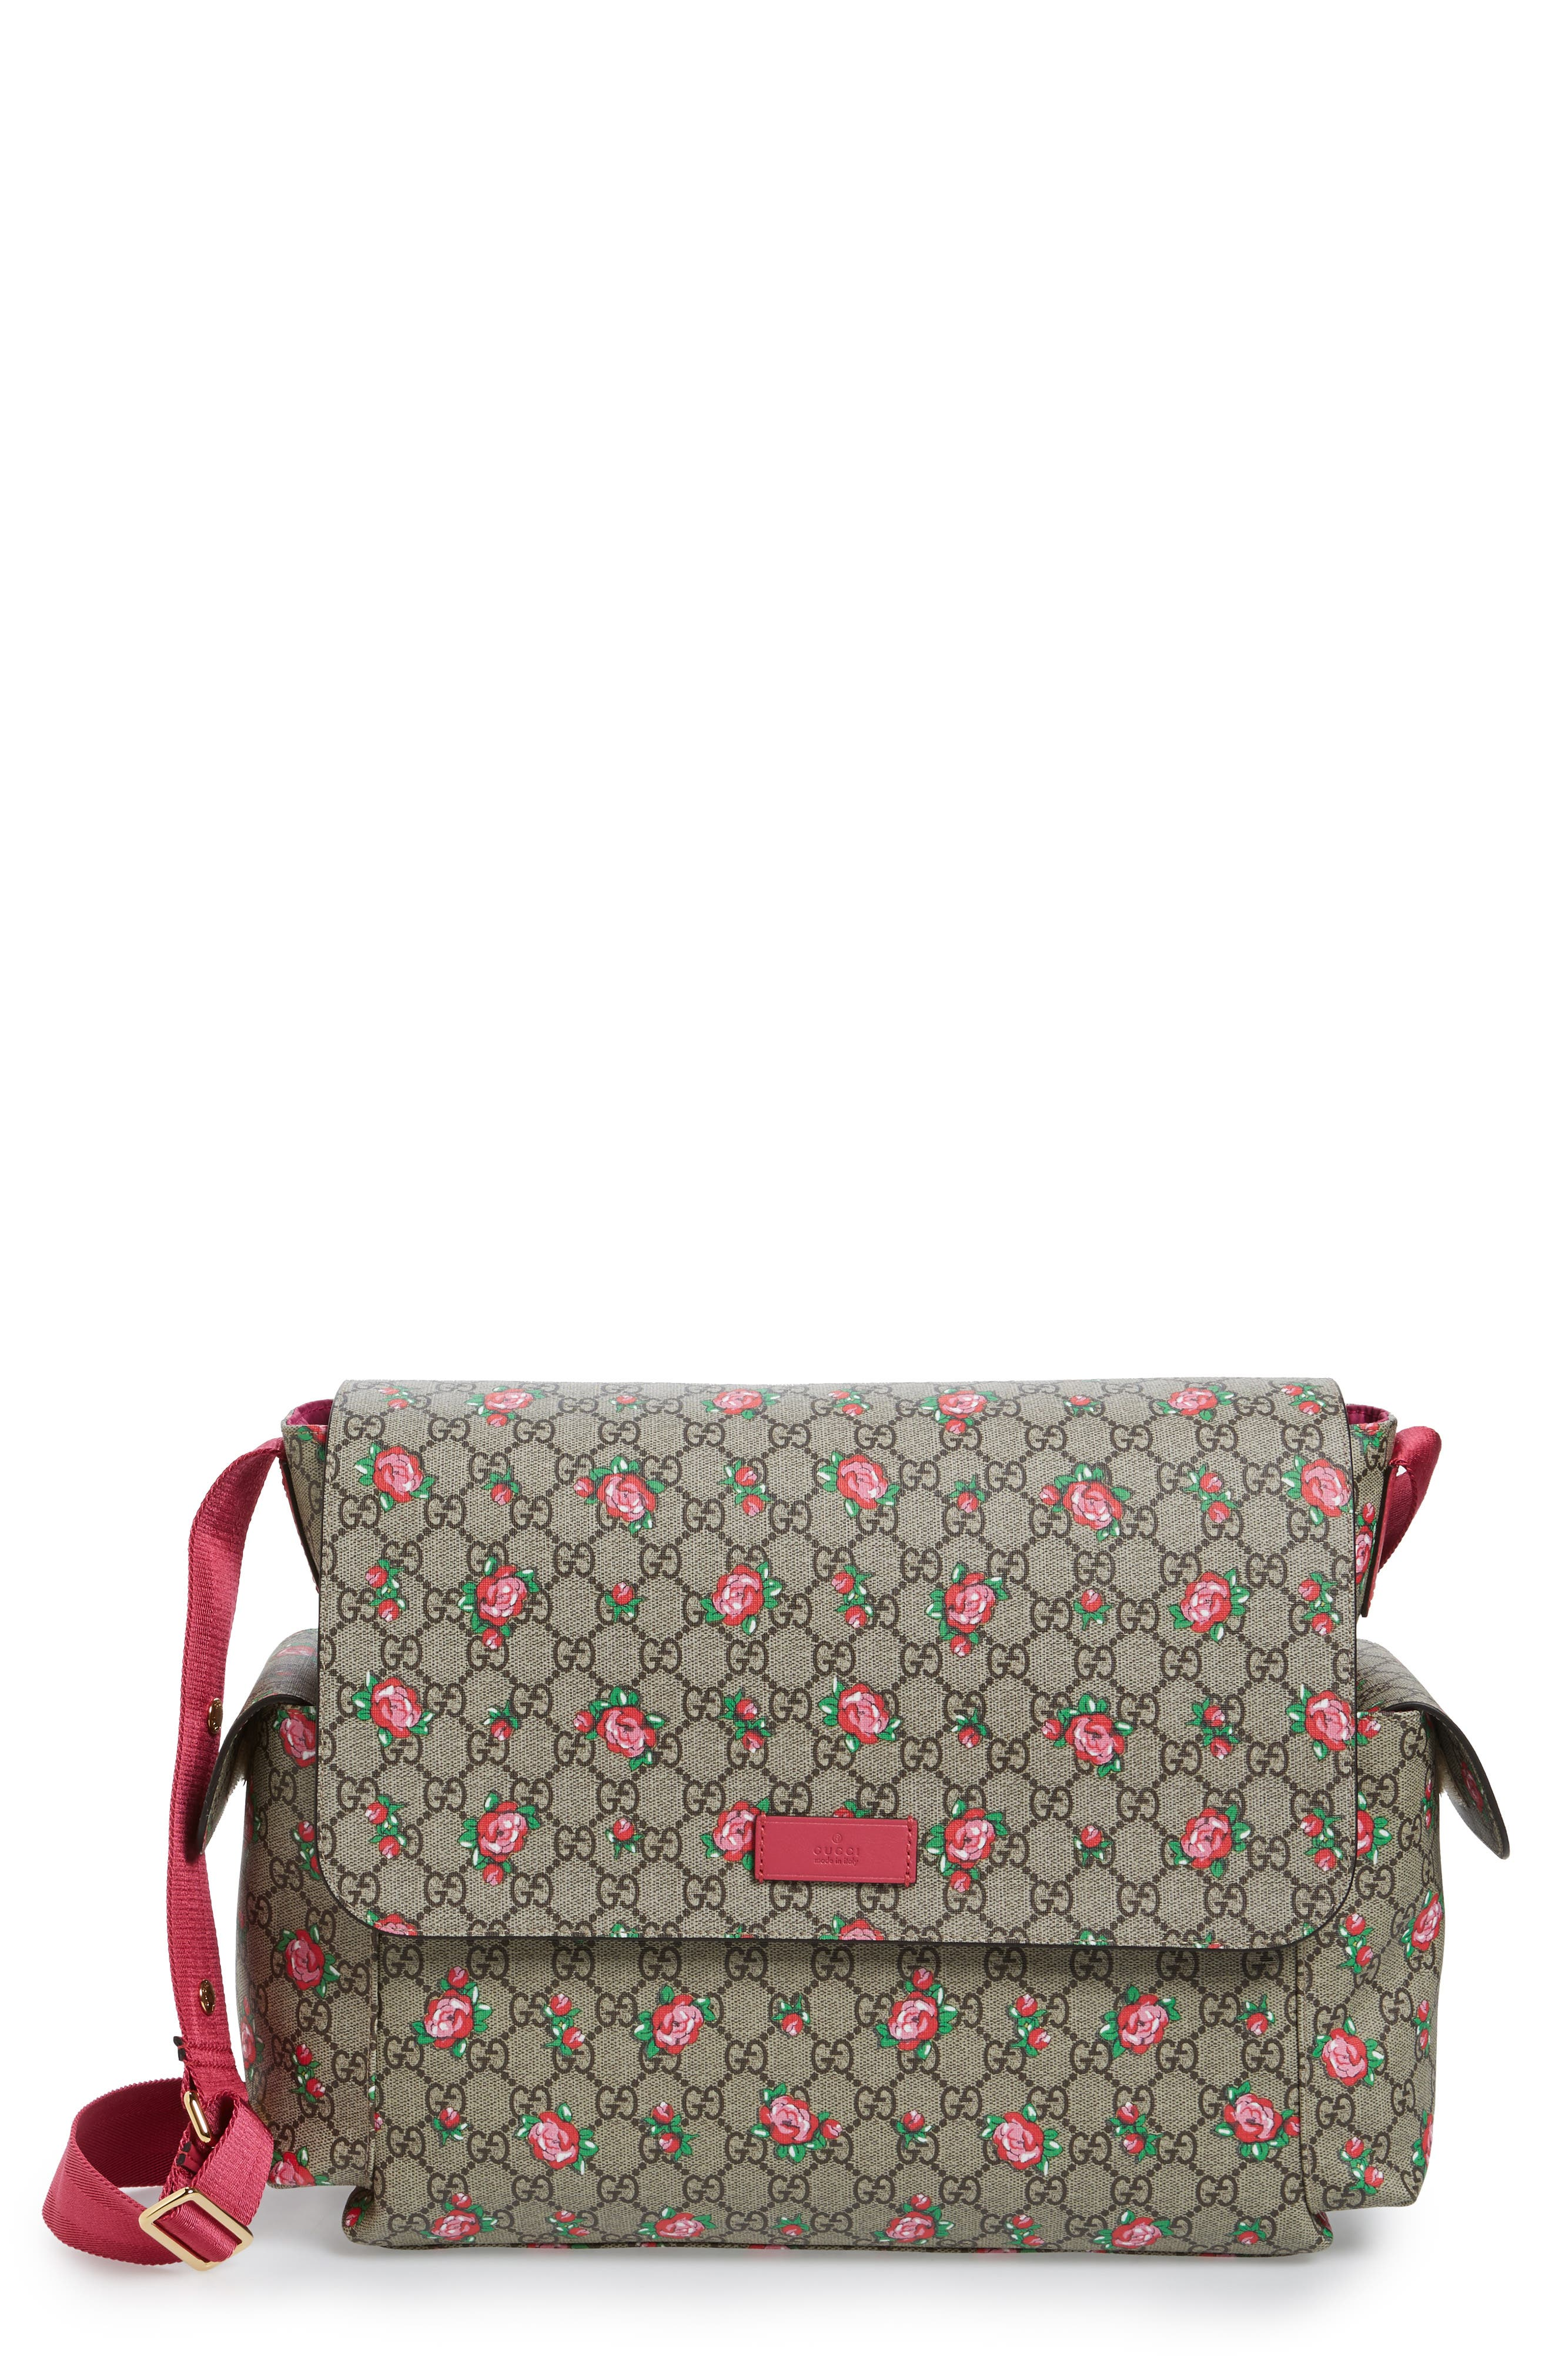 Rose GG Supreme Coated Canvas Diaper Bag,                         Main,                         color, 200